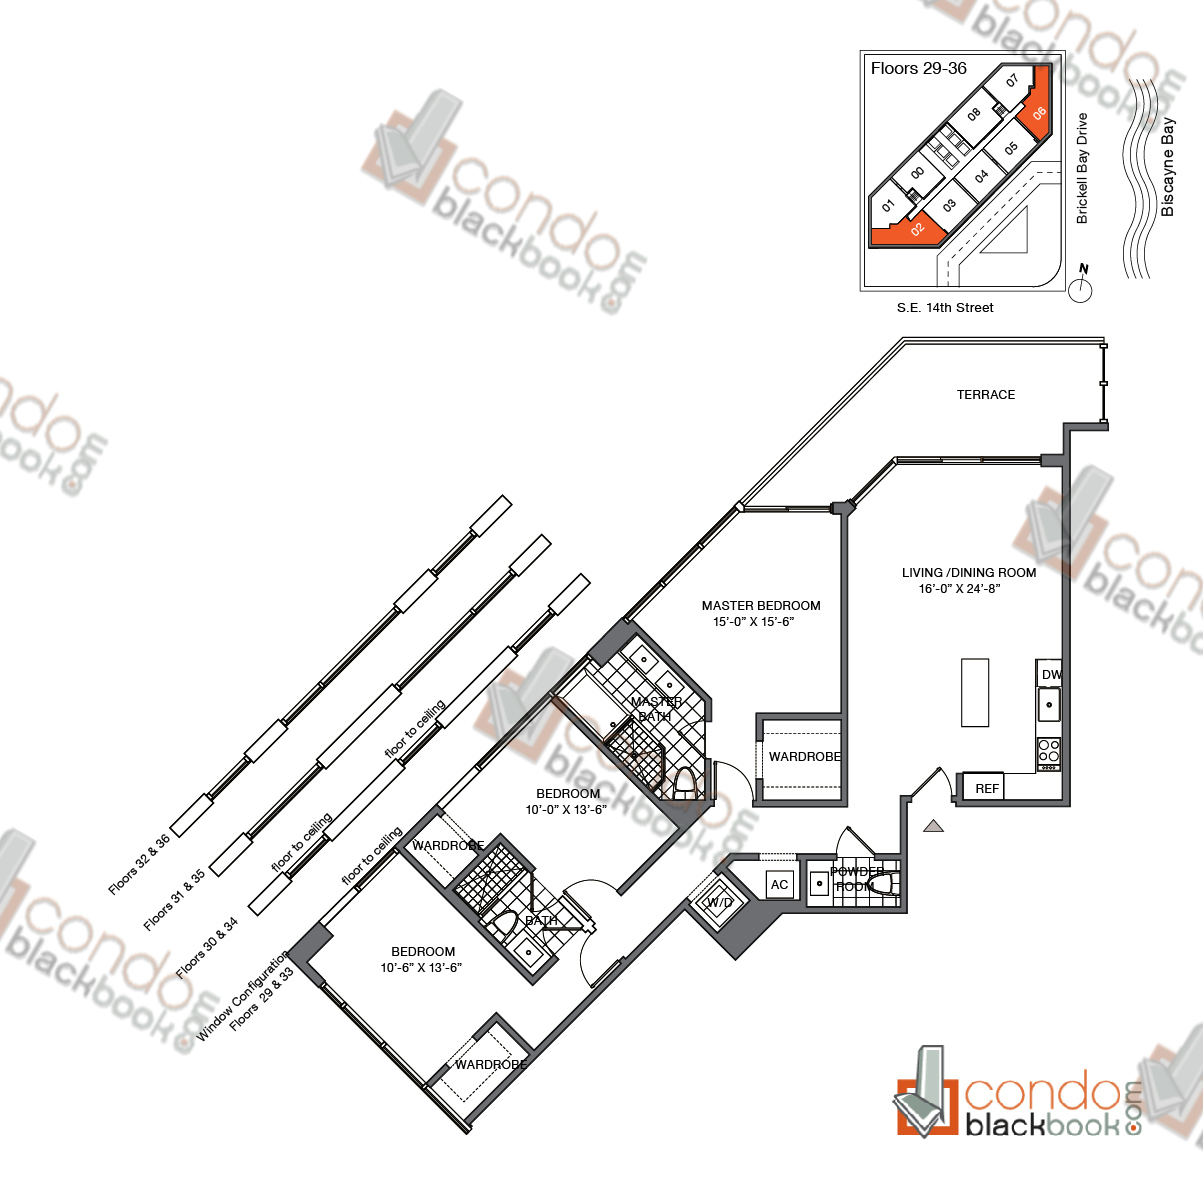 Floor plan for Brickell House Brickell Miami, model C1_29-36, line 02, 06, 3/2.5 bedrooms, 1,451 sq ft